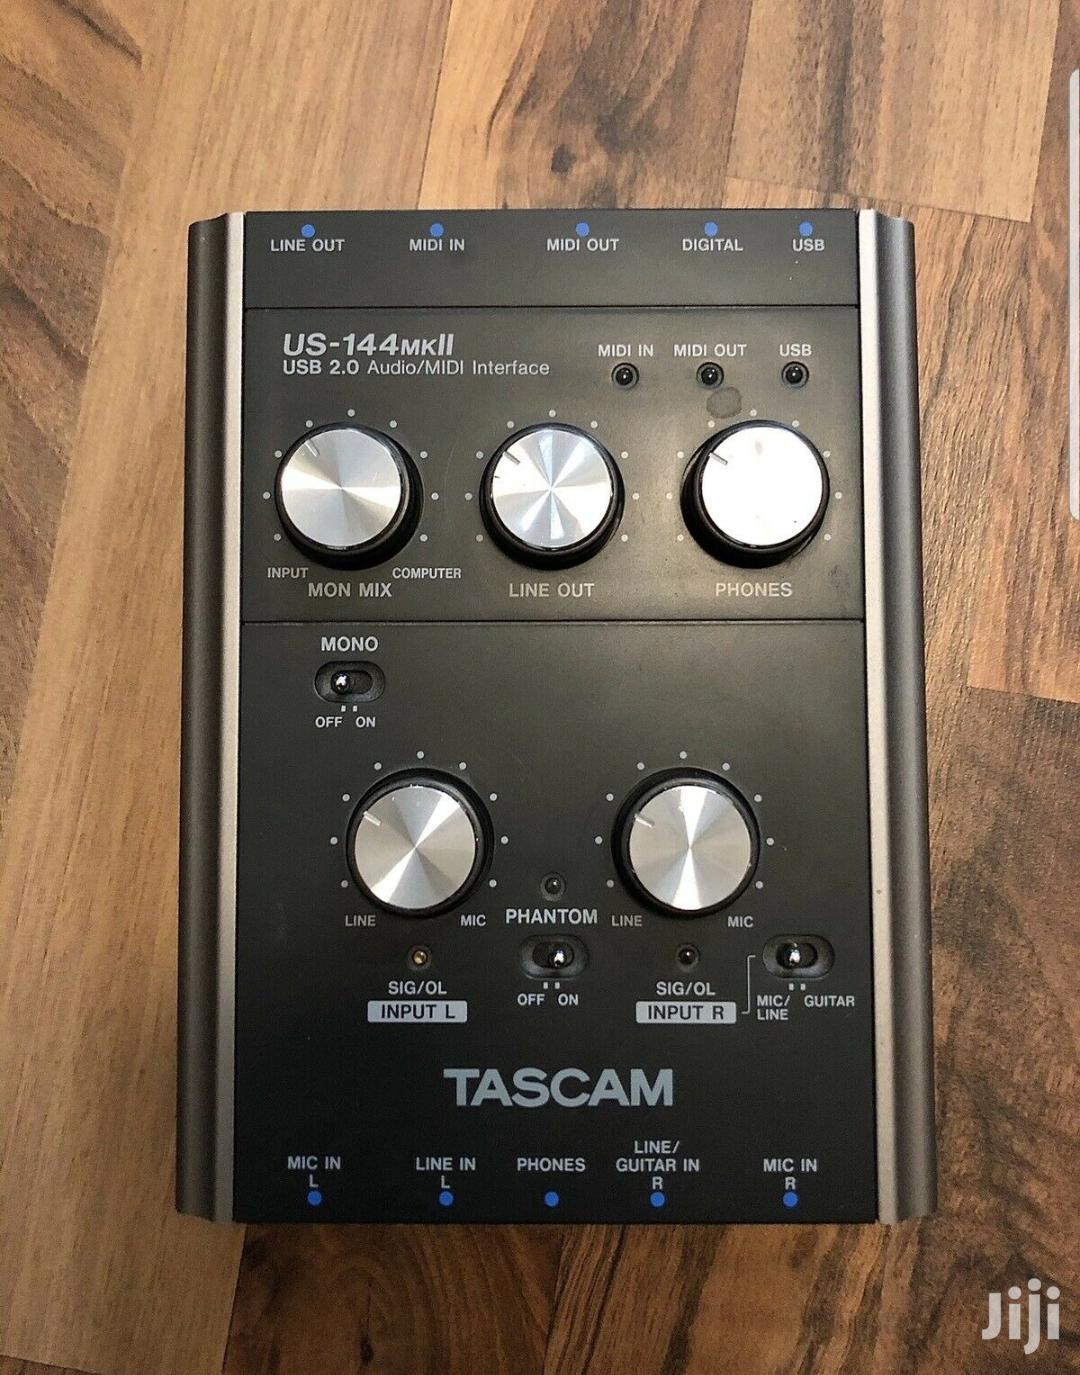 Tascam US-144 MKII Soundcard | Audio & Music Equipment for sale in Alajo, Greater Accra, Ghana